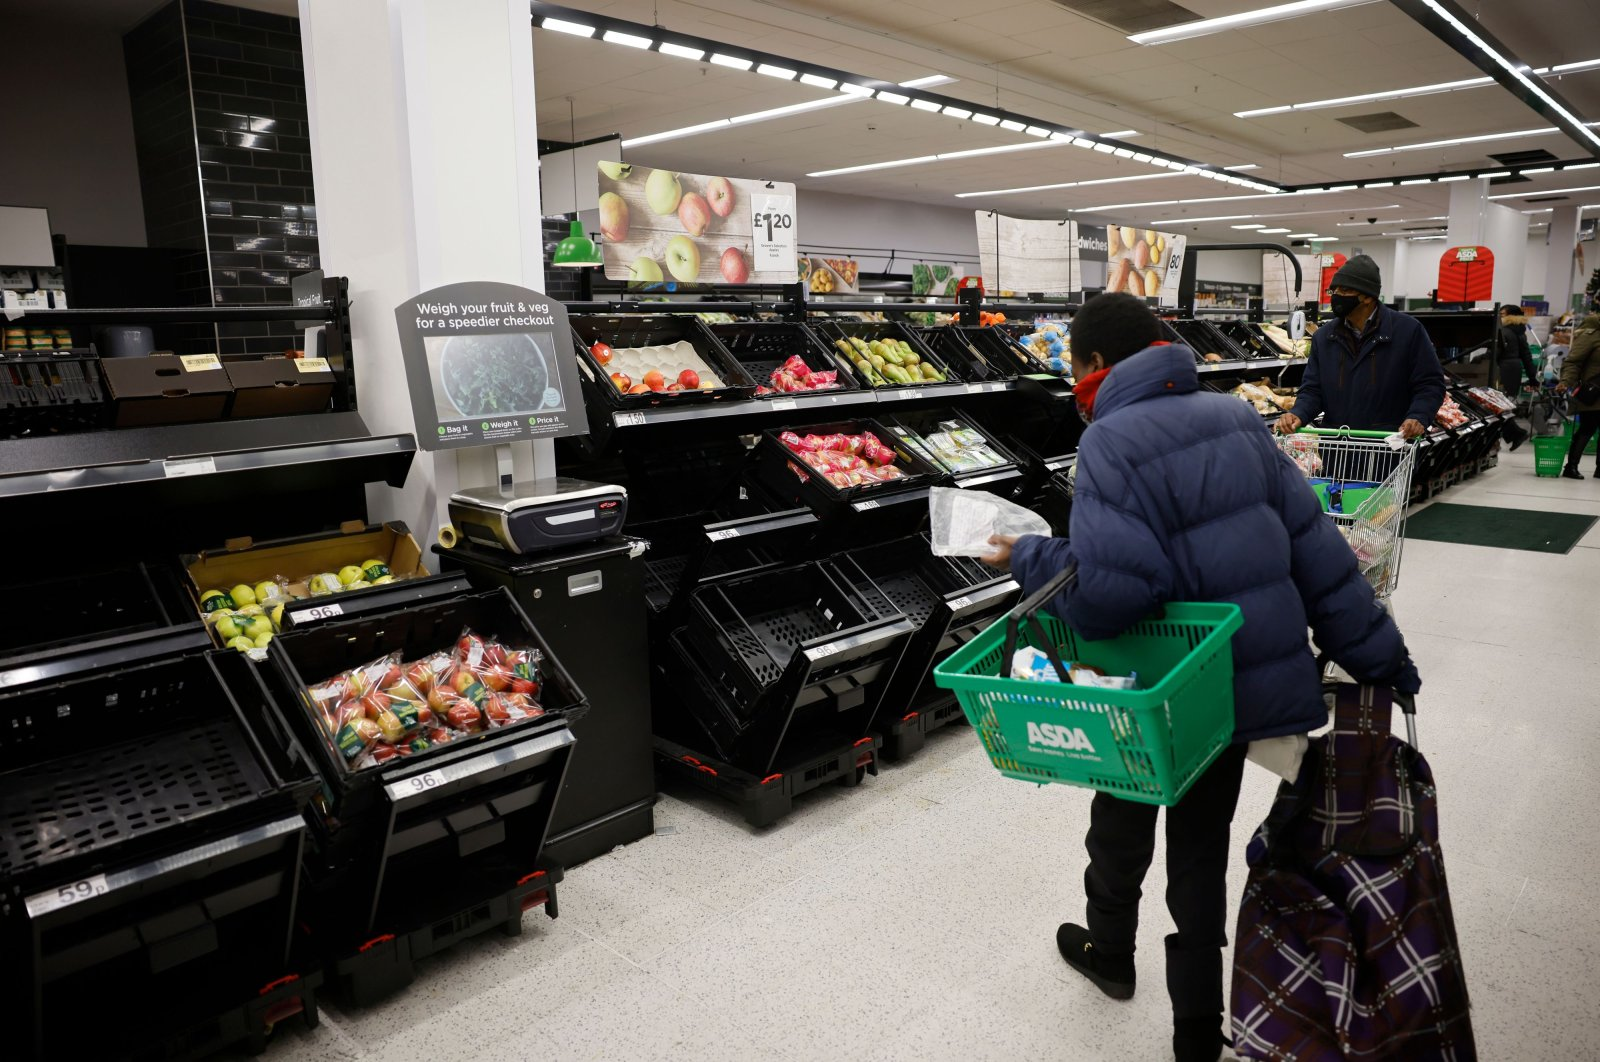 Shoppers, wearing face masks due to the COVID-19 pandemic, look at empty fruit and vegetable bins inside an ASDA supermarket in Walthamstow, northeast London, Dec. 22, 2020. (AFP Photo)